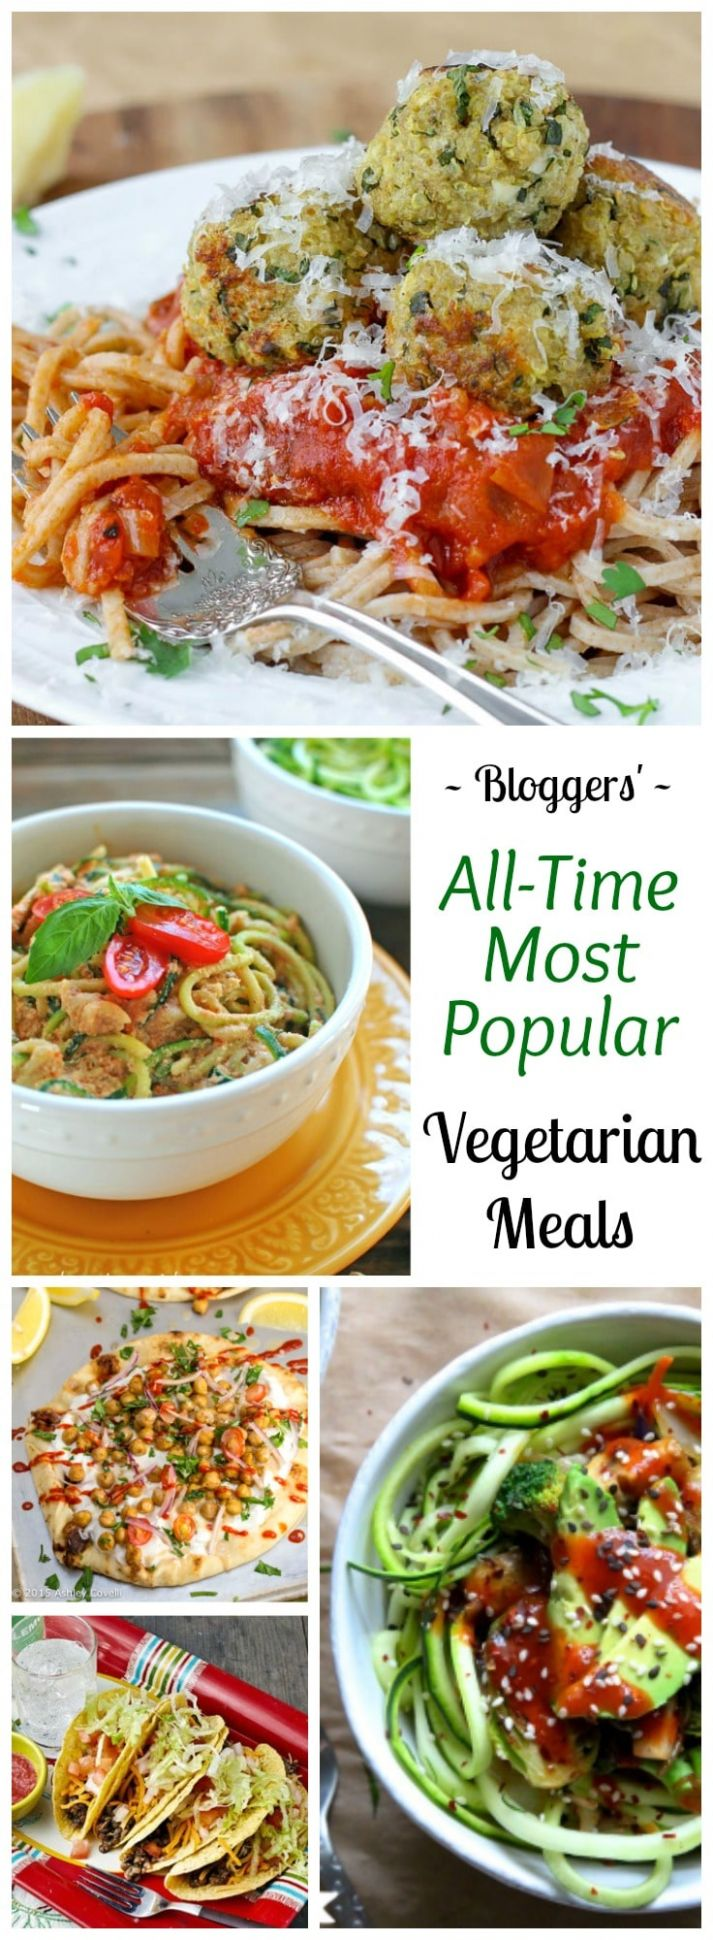 12 All-Time Best Healthy Vegetarian Meals - Two Healthy Kitchens